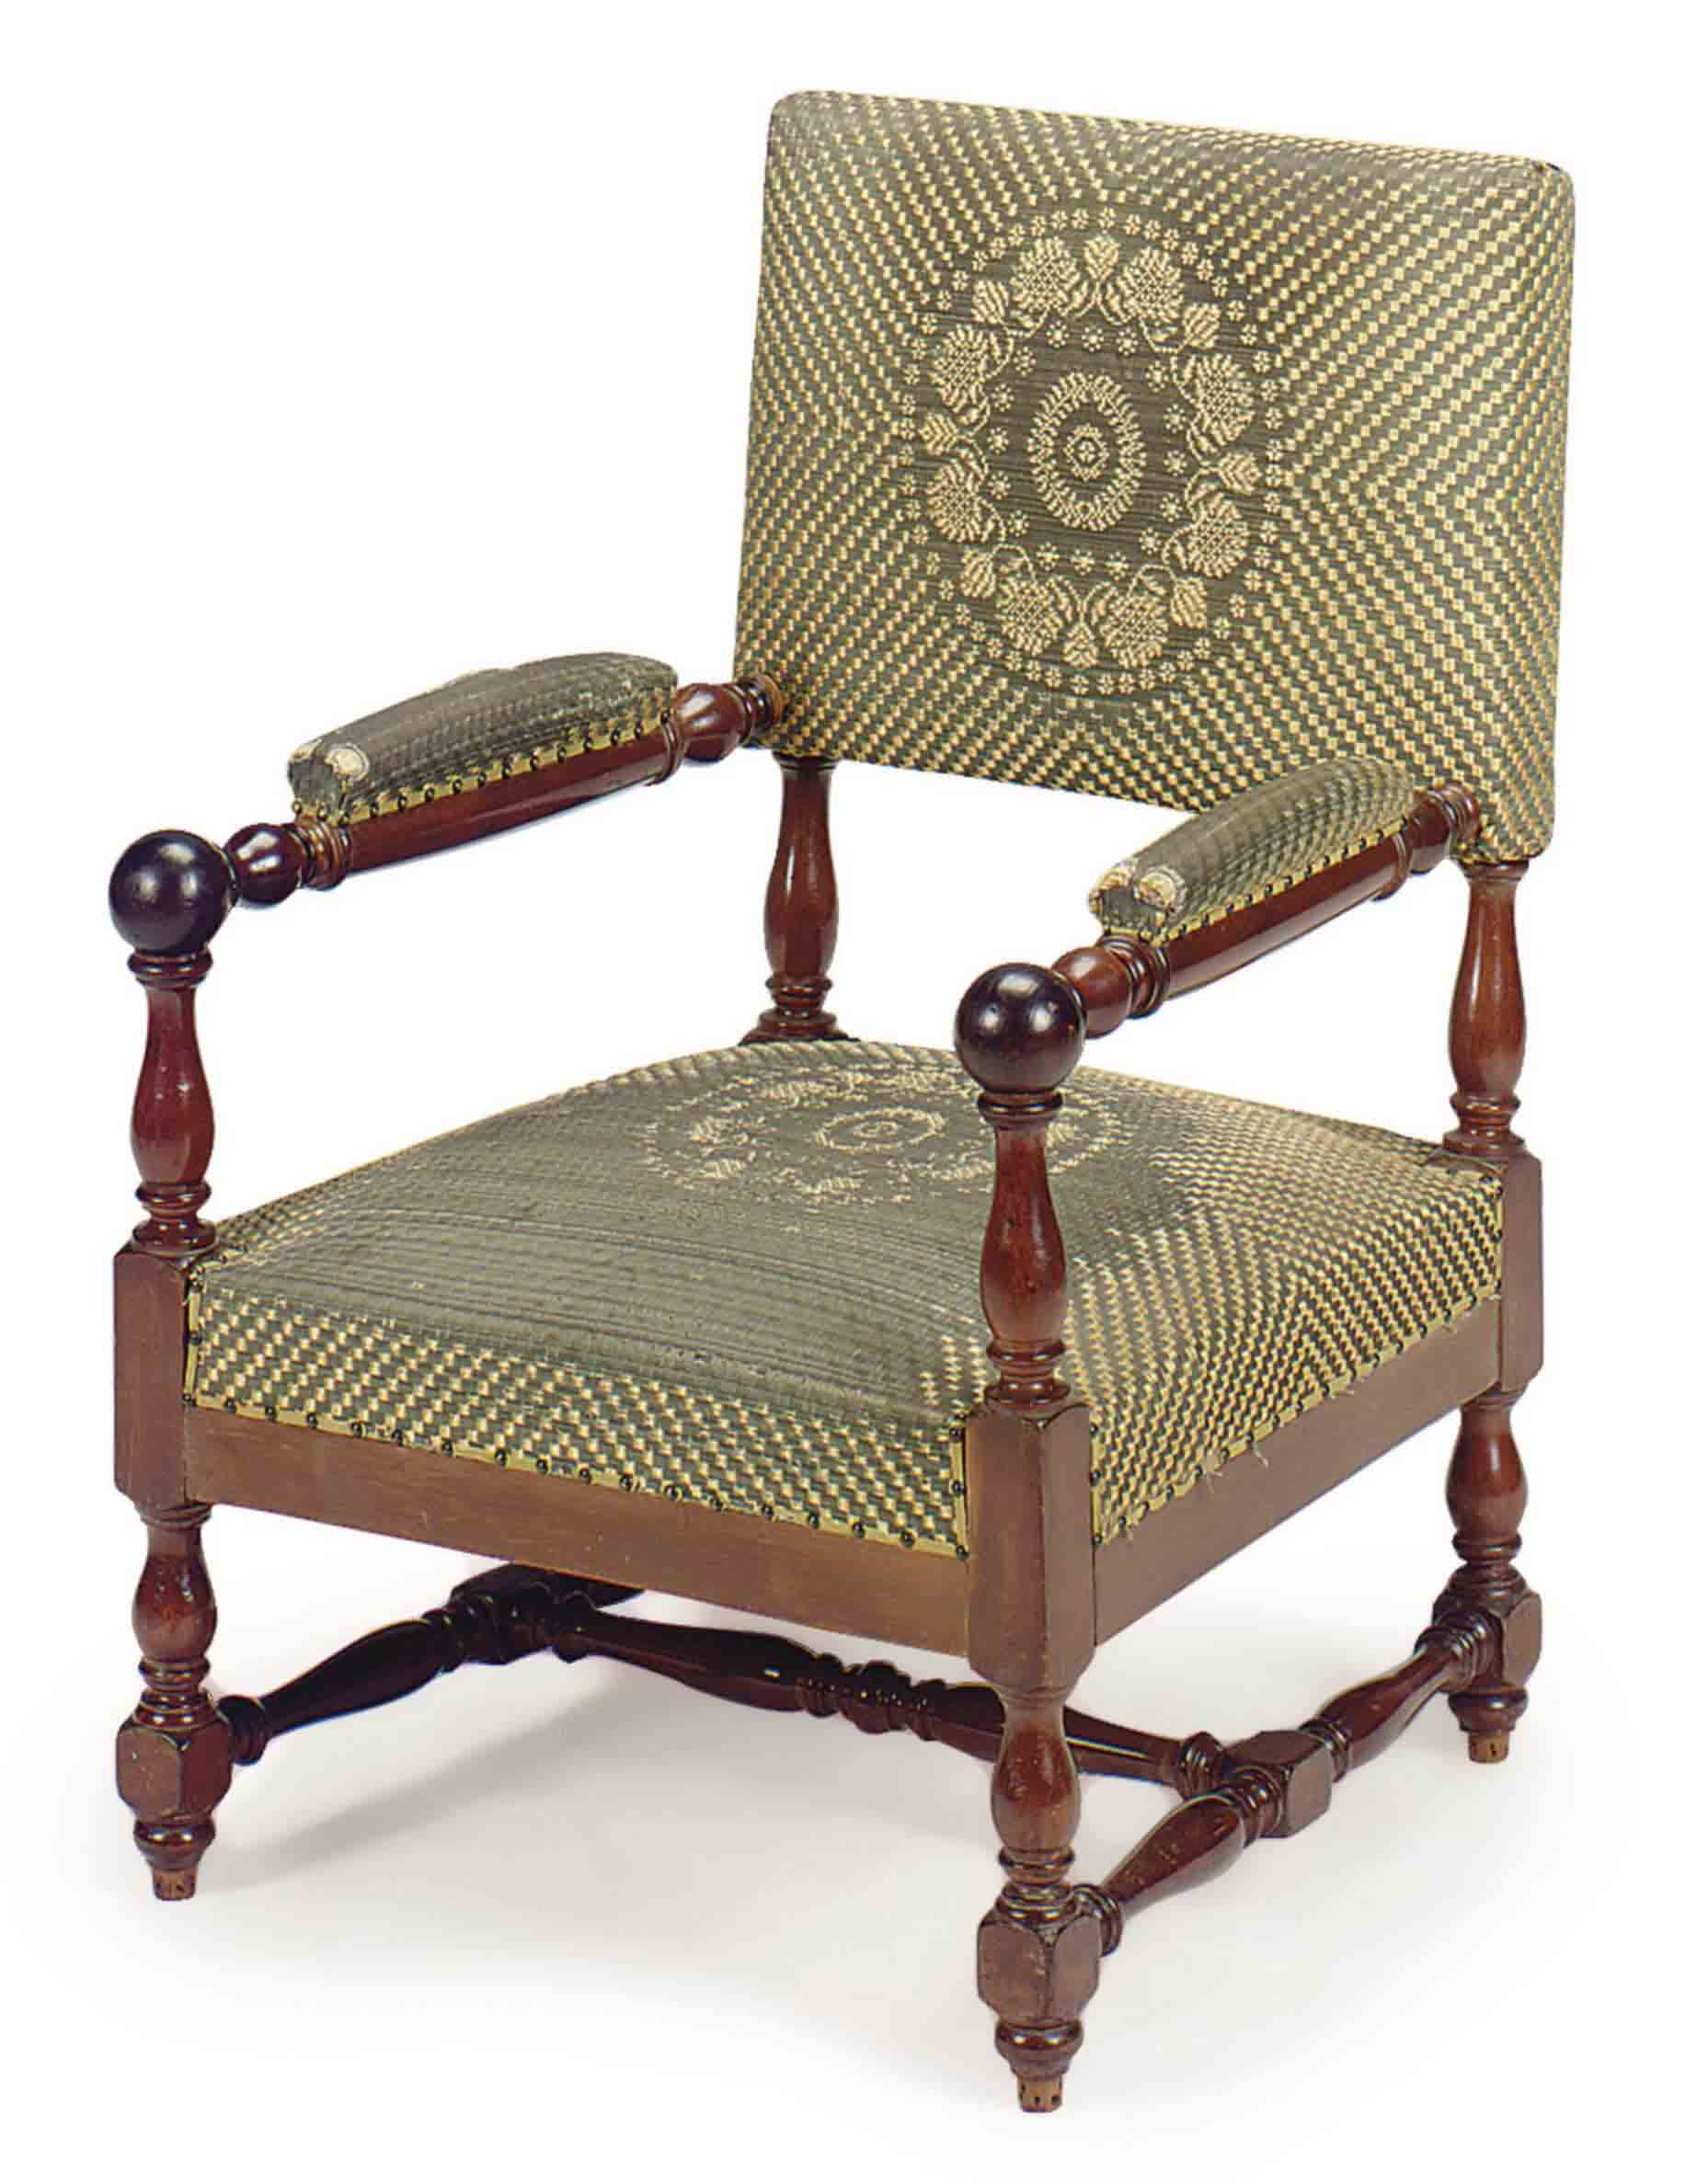 A FRENCH MAHOGANY AND HORSEHAIR-COVERED FAUTEUIL,